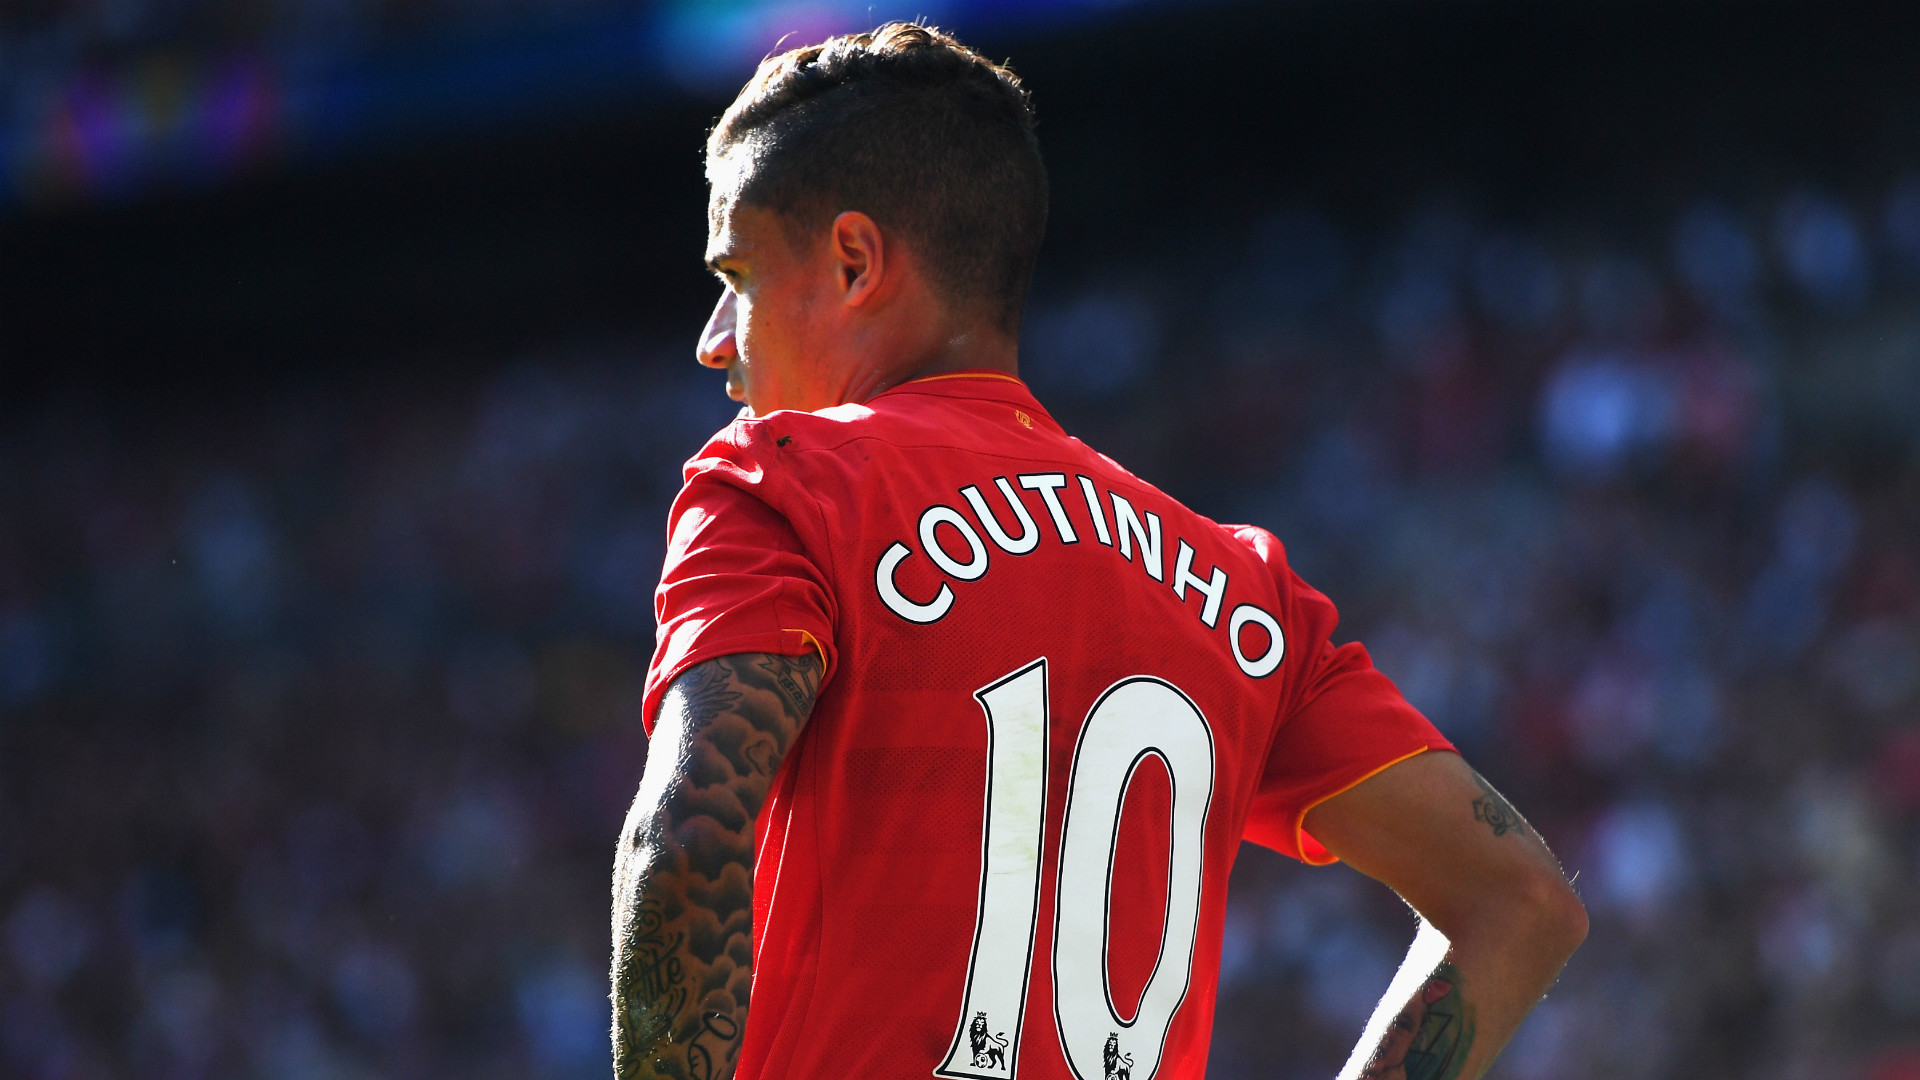 Outshining Hazard and out-assisting Ozil - is Coutinho PL's best player?